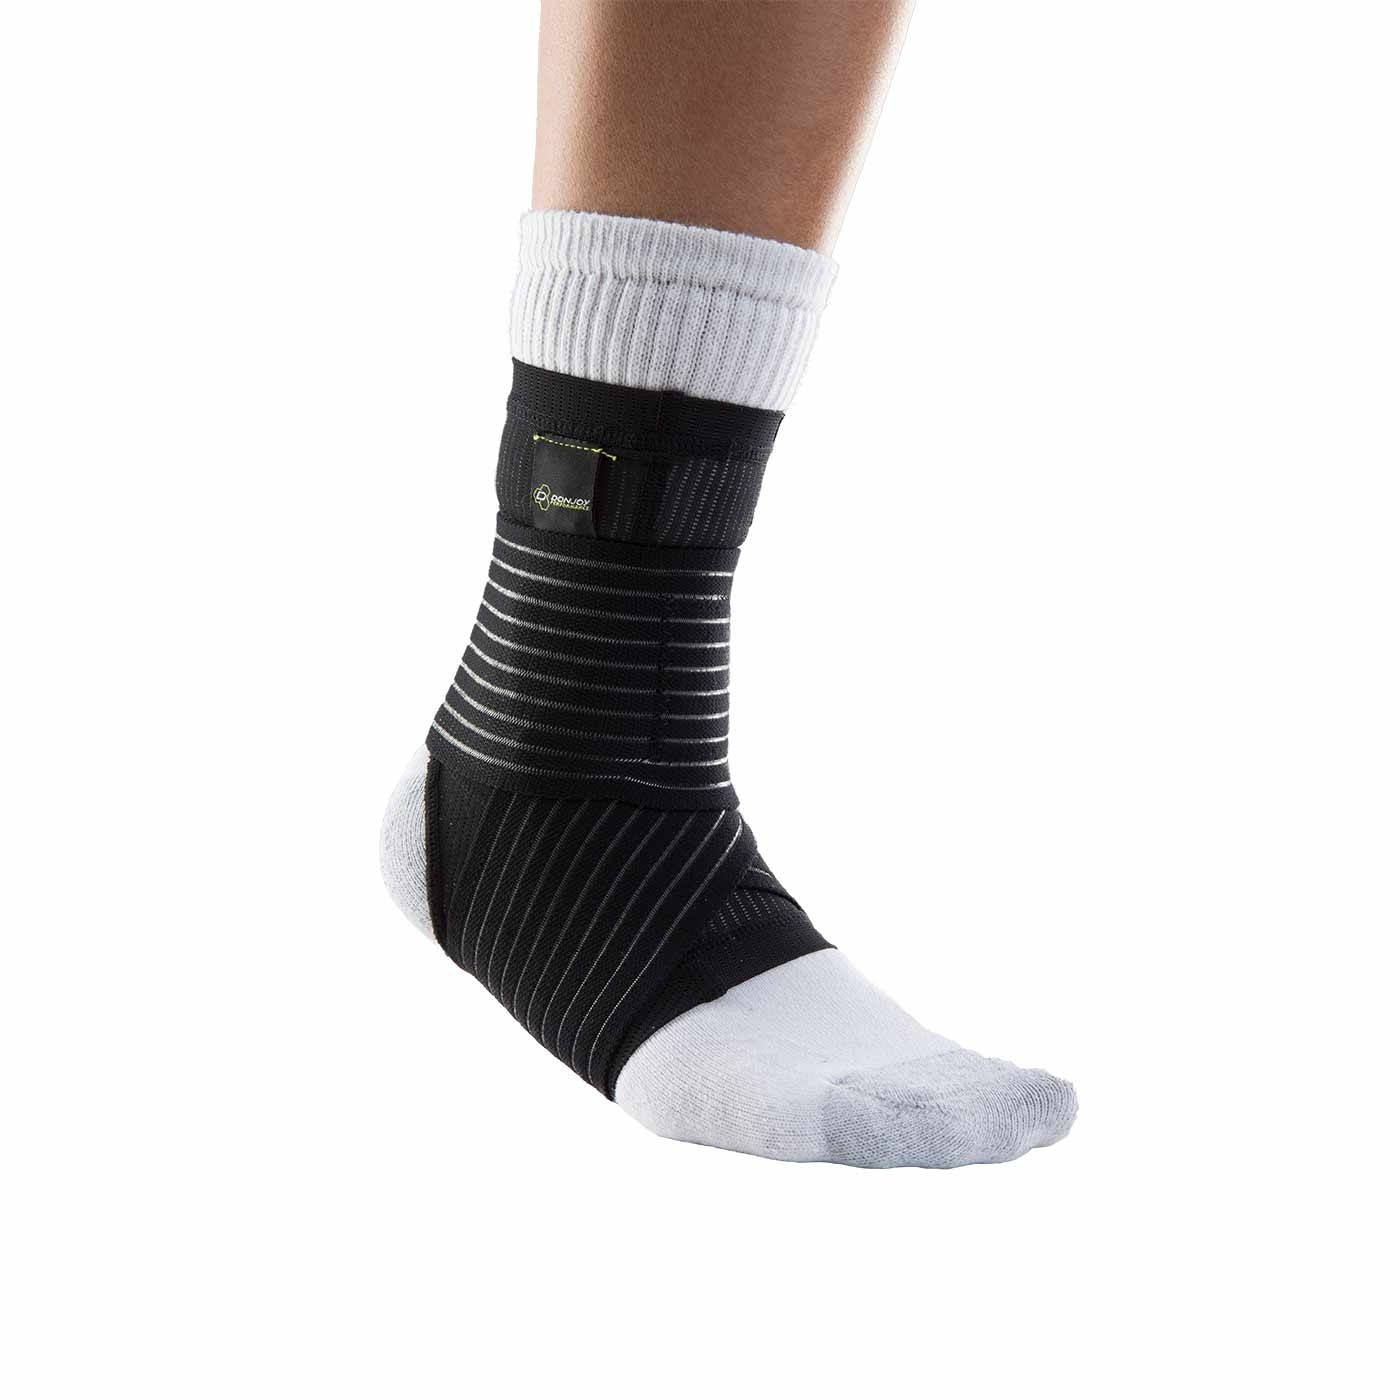 DonJoy Performance Figure 8 Ankle Sleeve with Straps